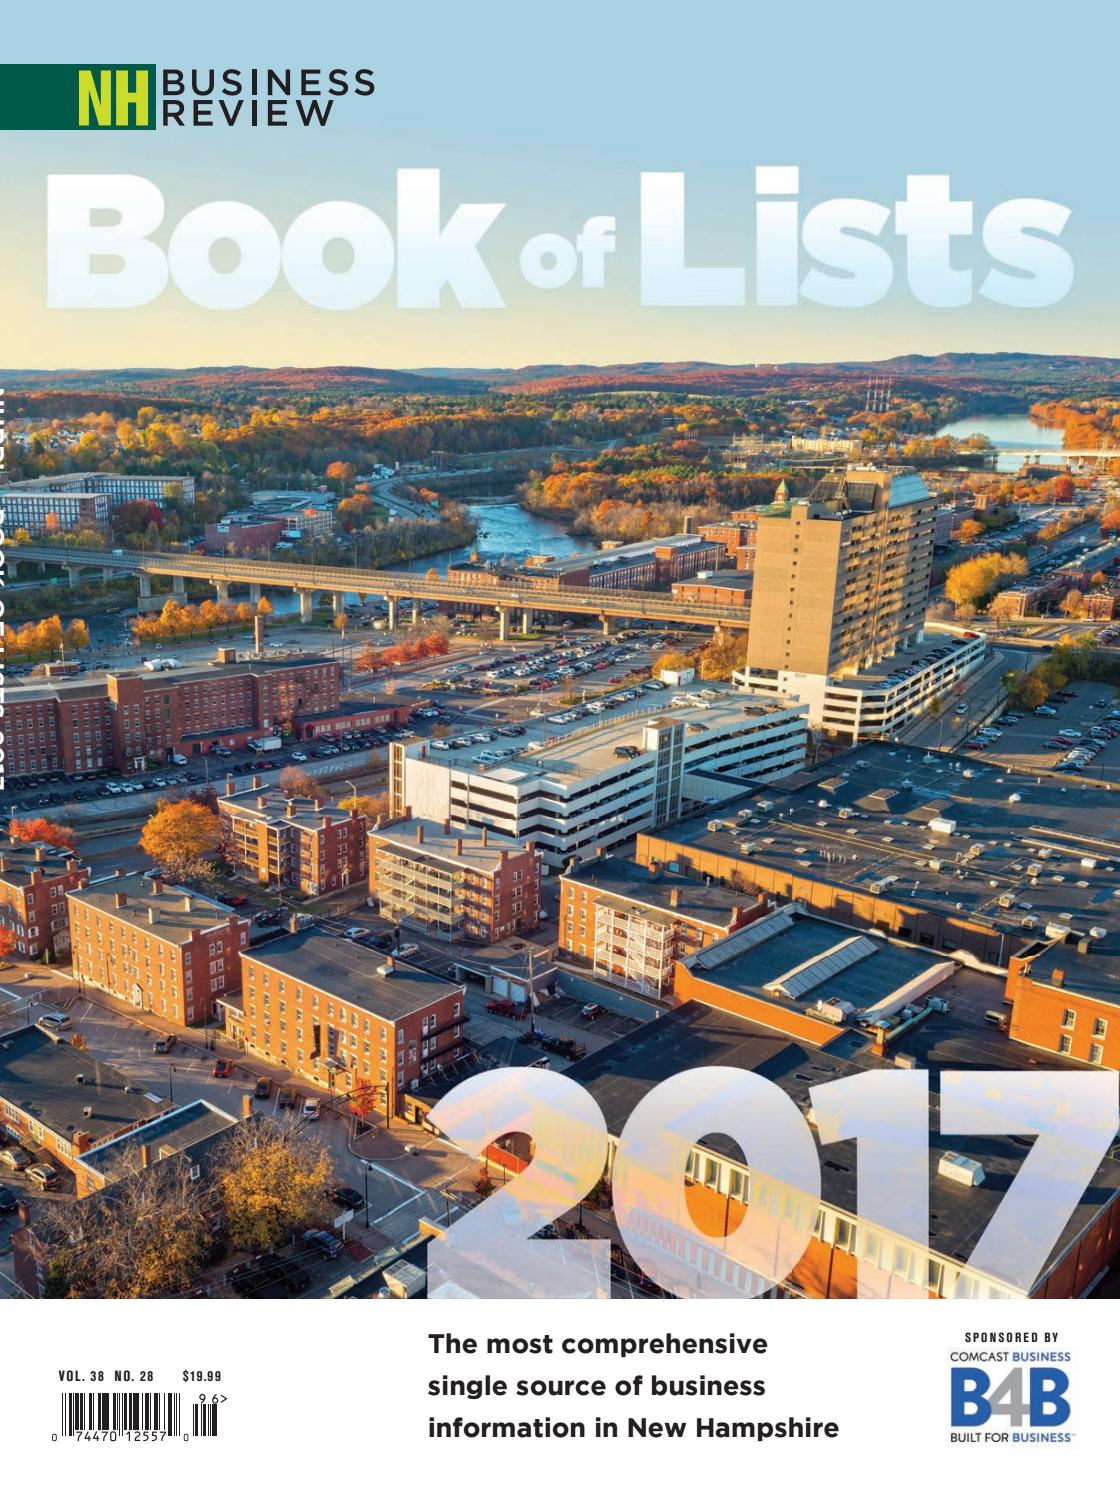 2017 NHBR Book of Lists by McLean Communications - issuu